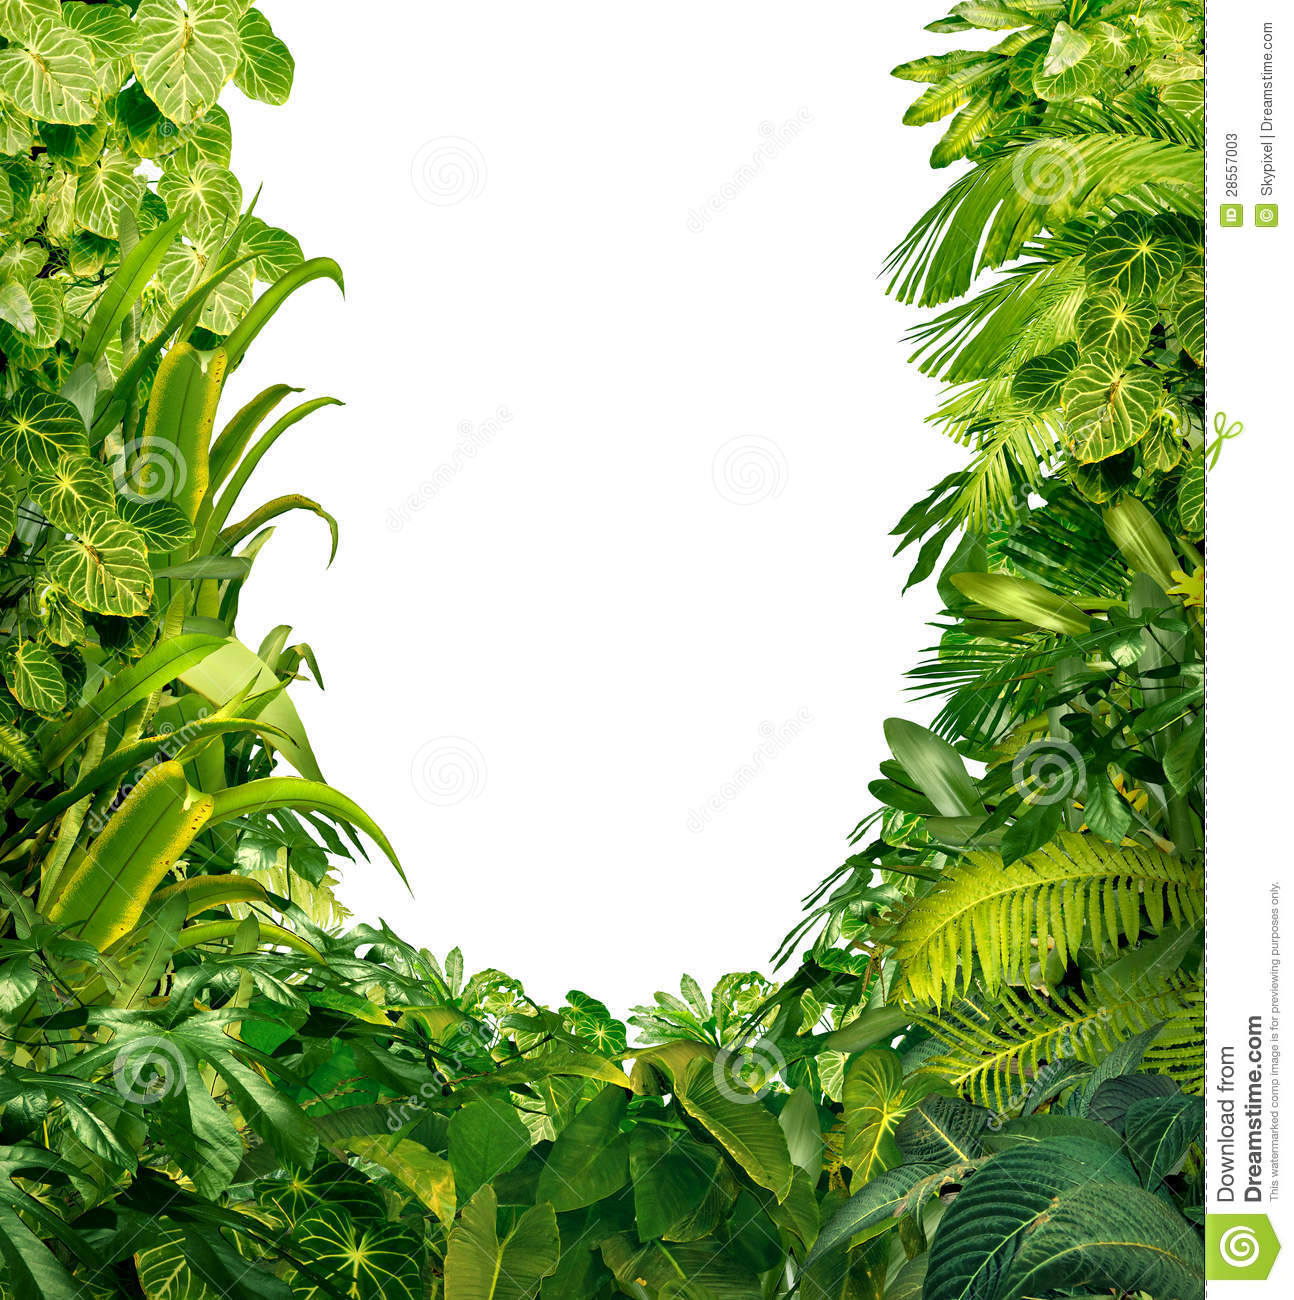 Tropical Plants Blank Frame Stock Photos Image 28557003